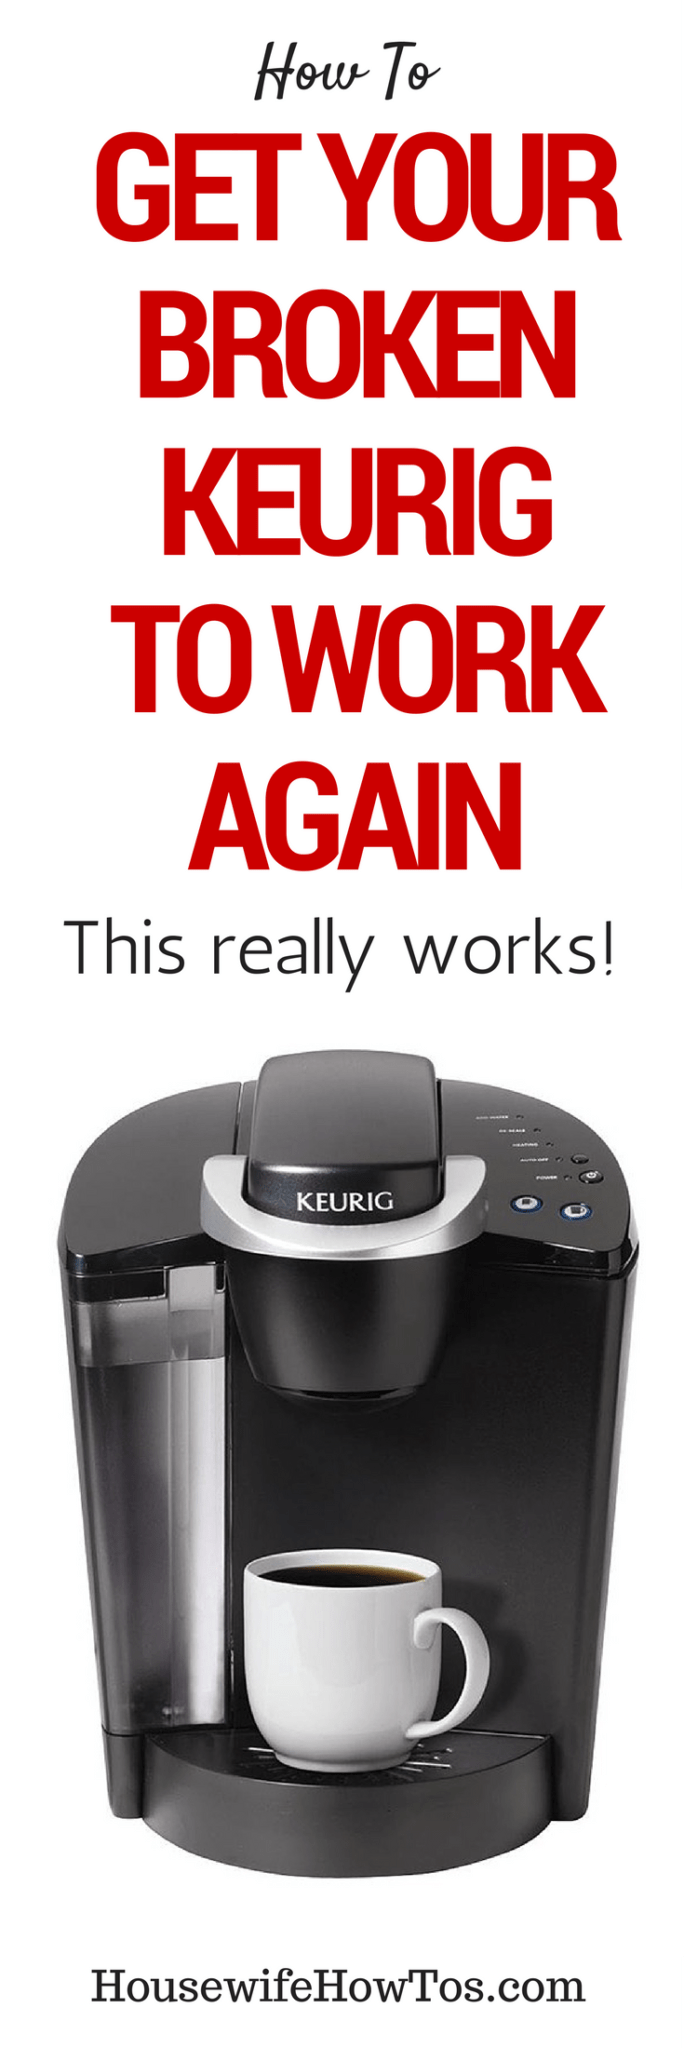 These easy steps got my Keurig working like new again even though I thought it was broken!